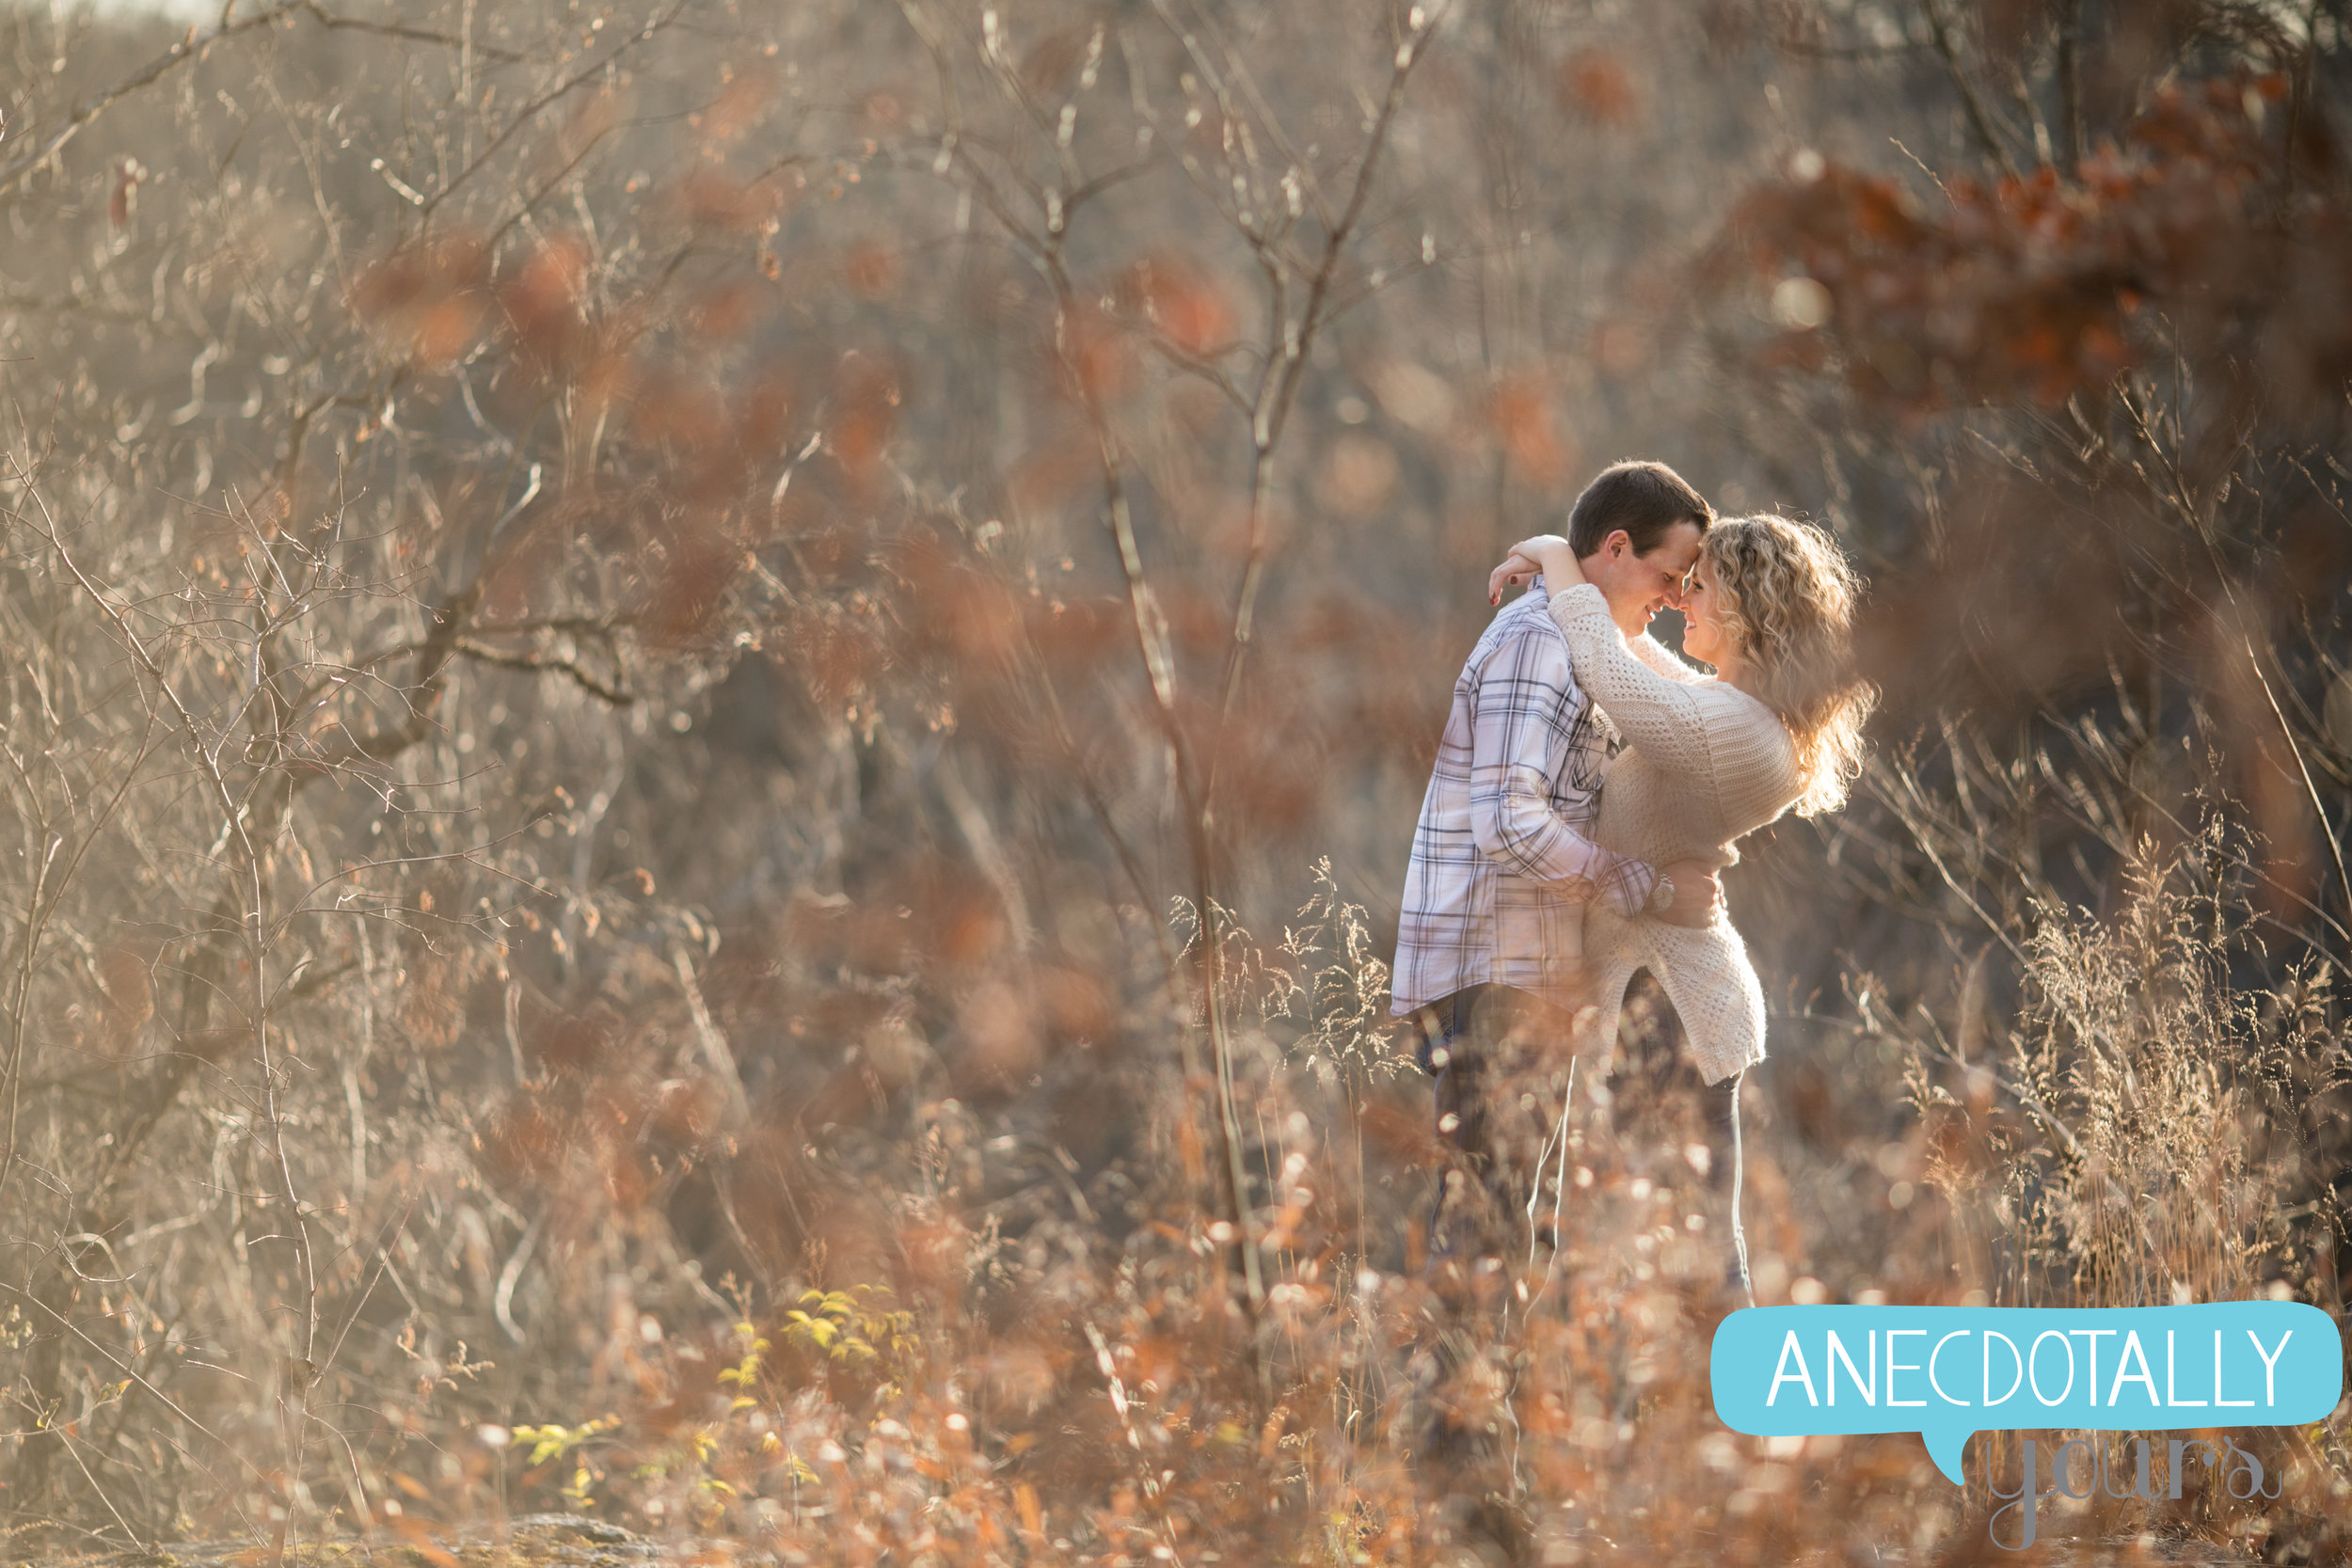 maile-patrick-engagement-14.jpg